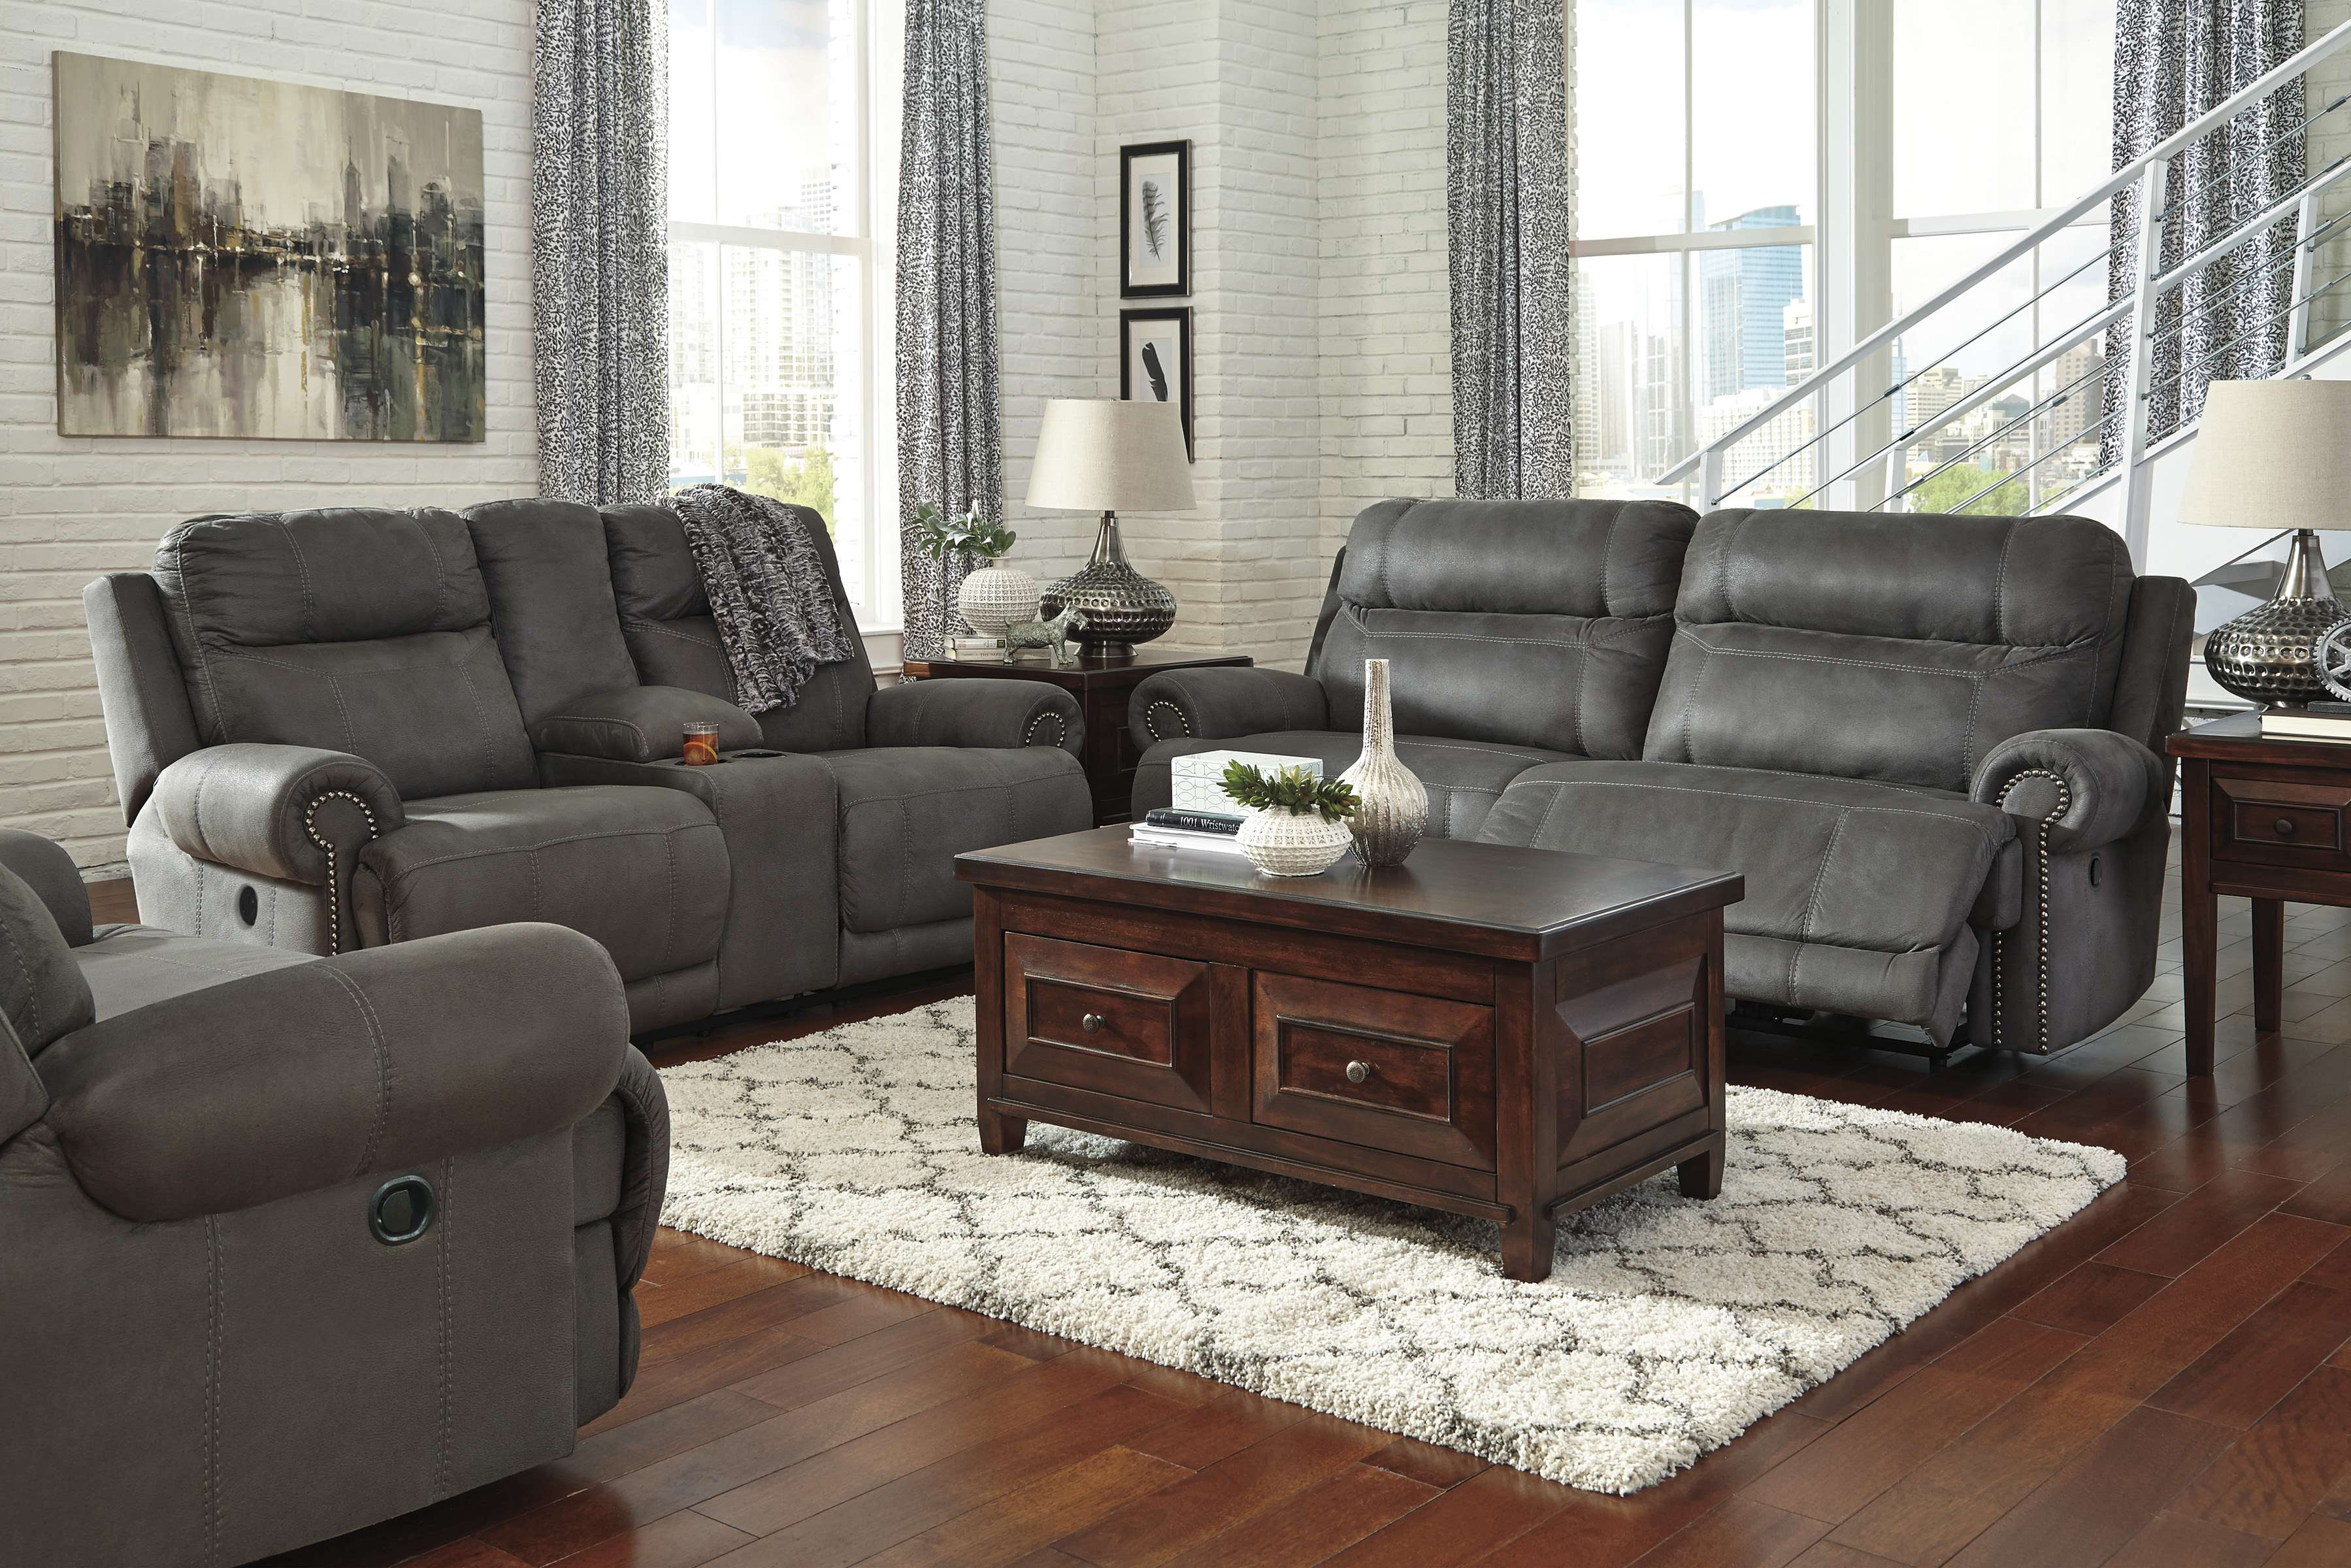 Signature Design Ashley 3840181 3840194 3840152 in 15 Awesome Ways How to Makeover Cheap 3 Piece Living Room Set